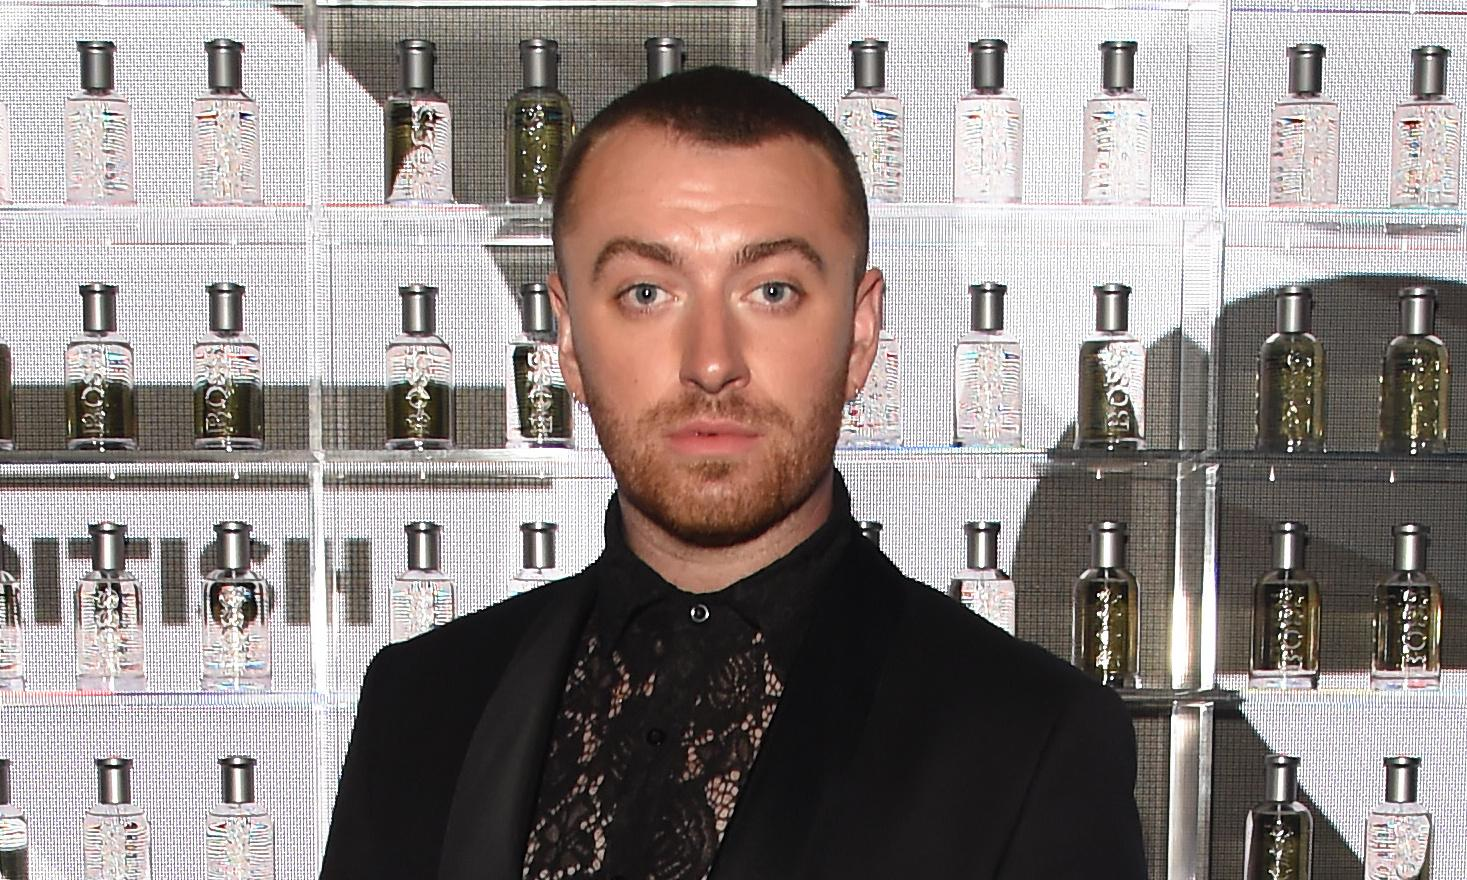 Sam Smith on being non-binary: 'I'm changing my pronouns to they/them'